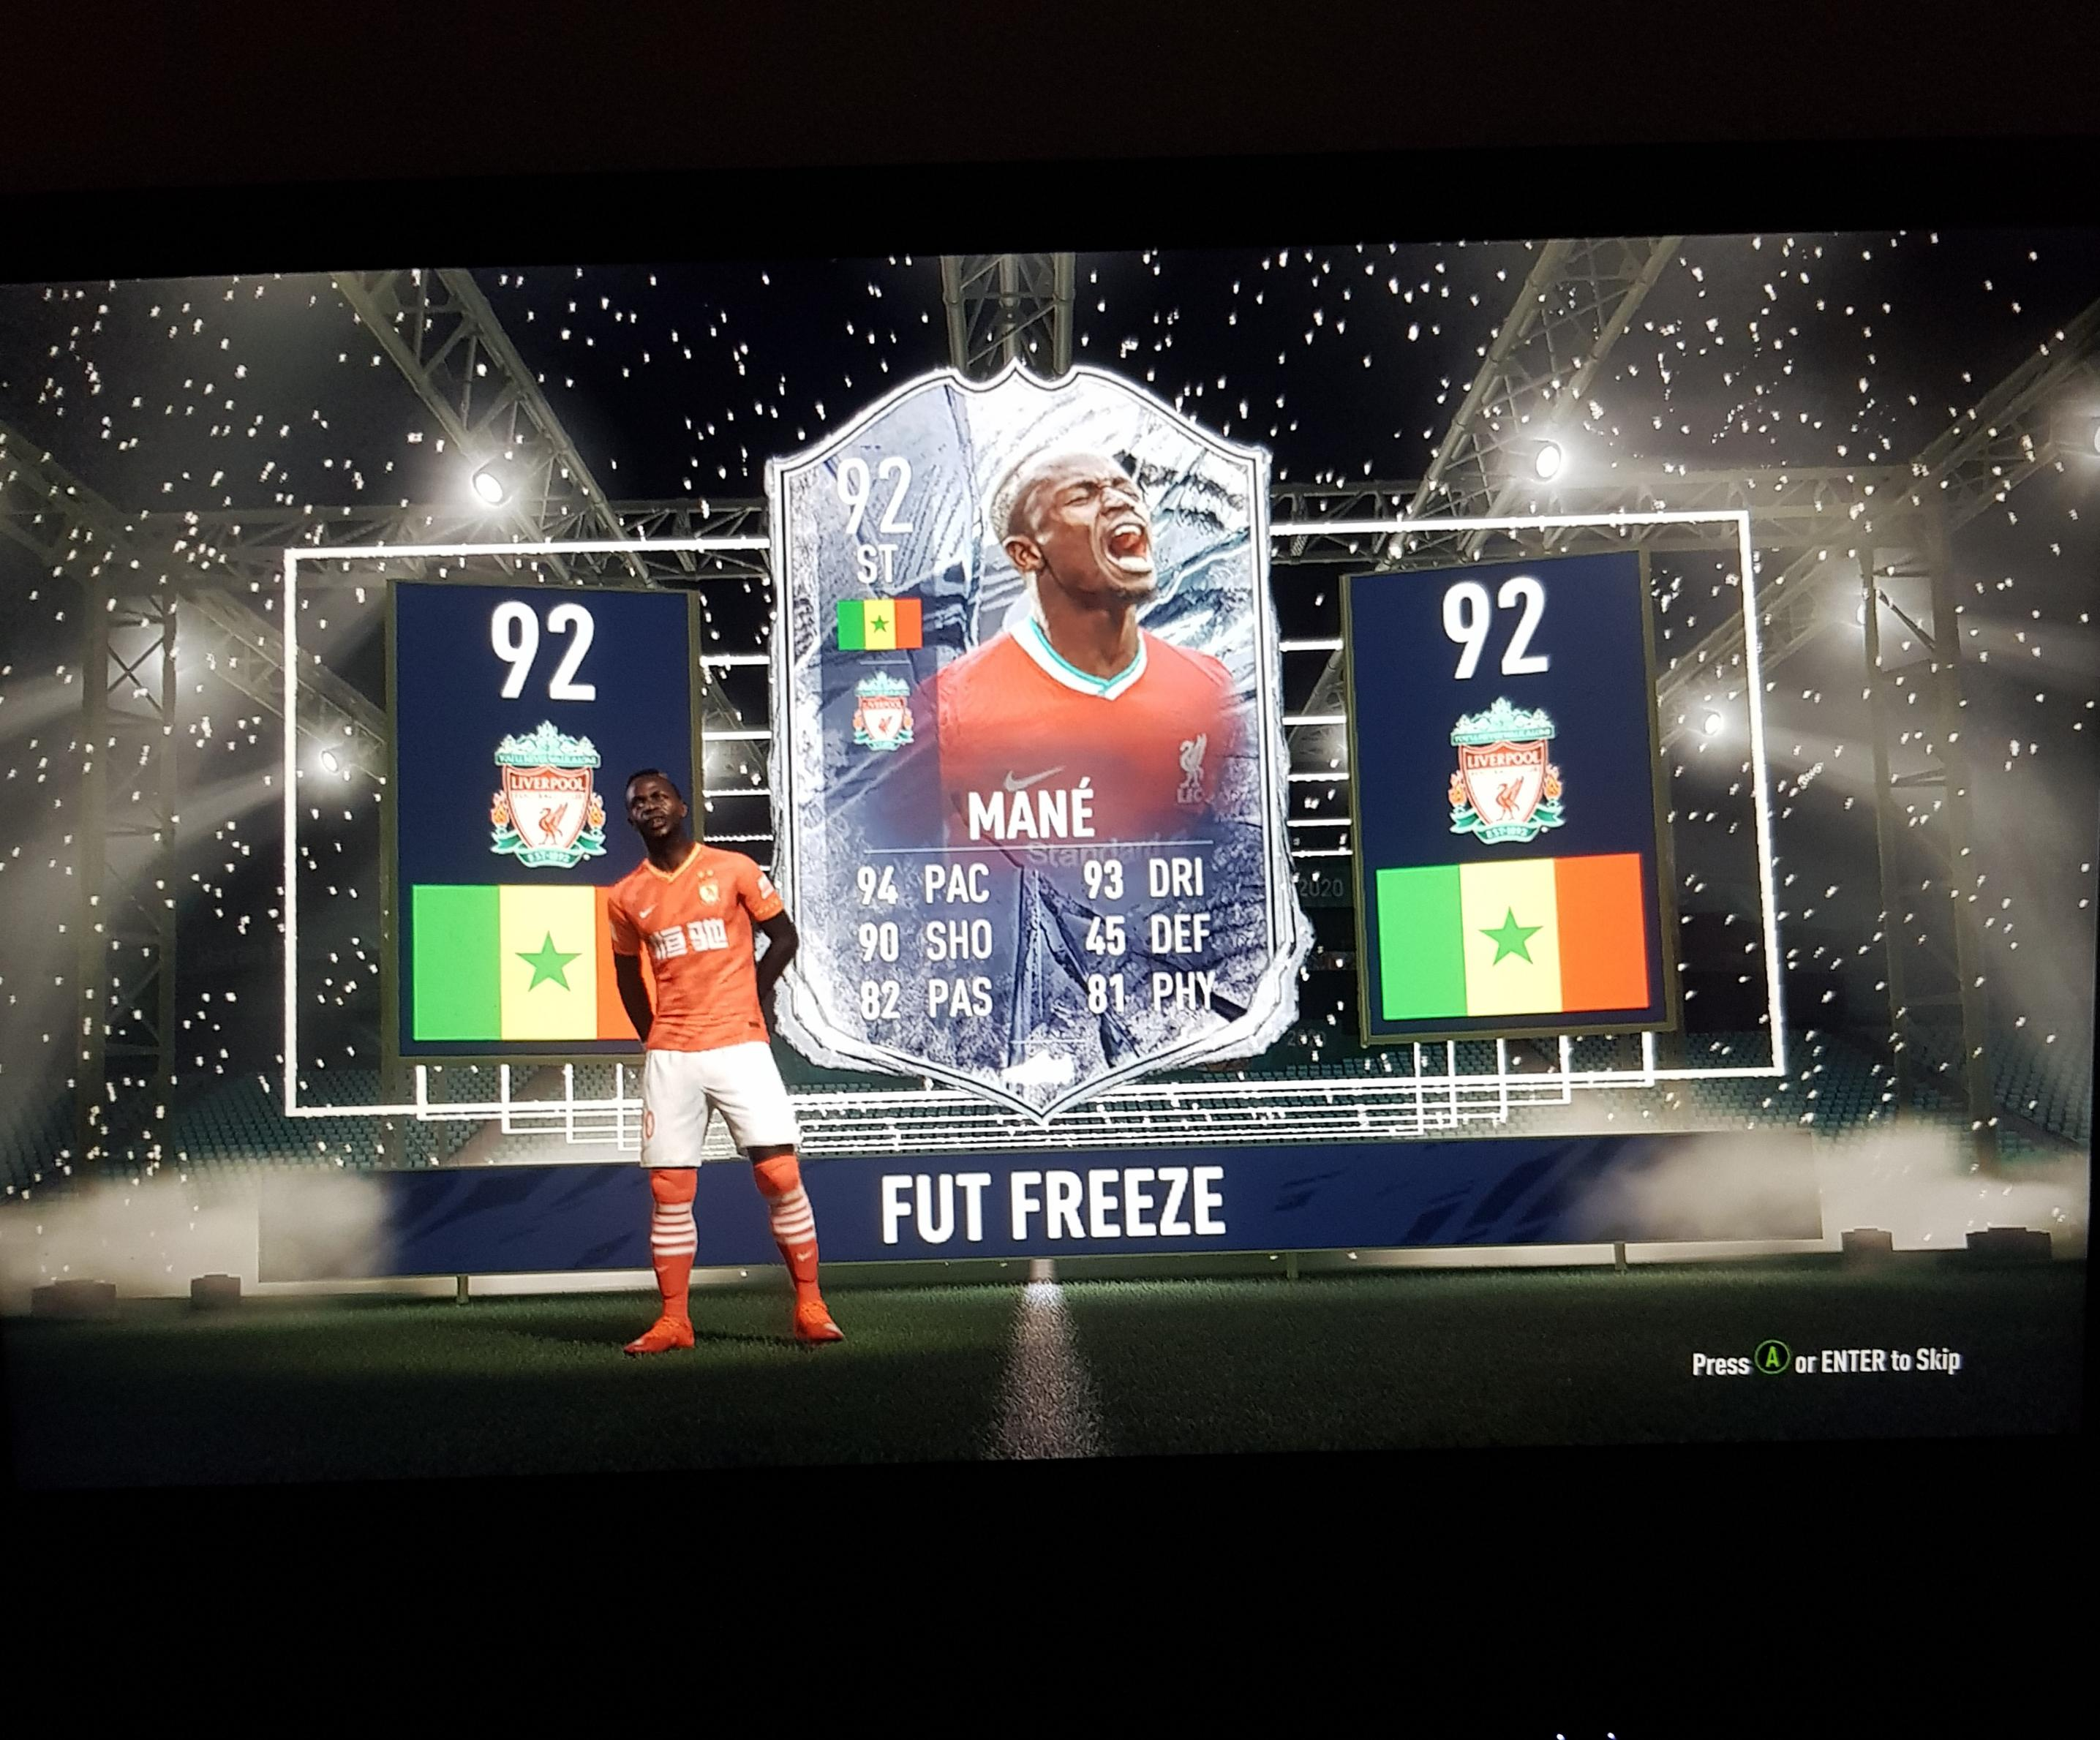 83 x25 pack fifa21